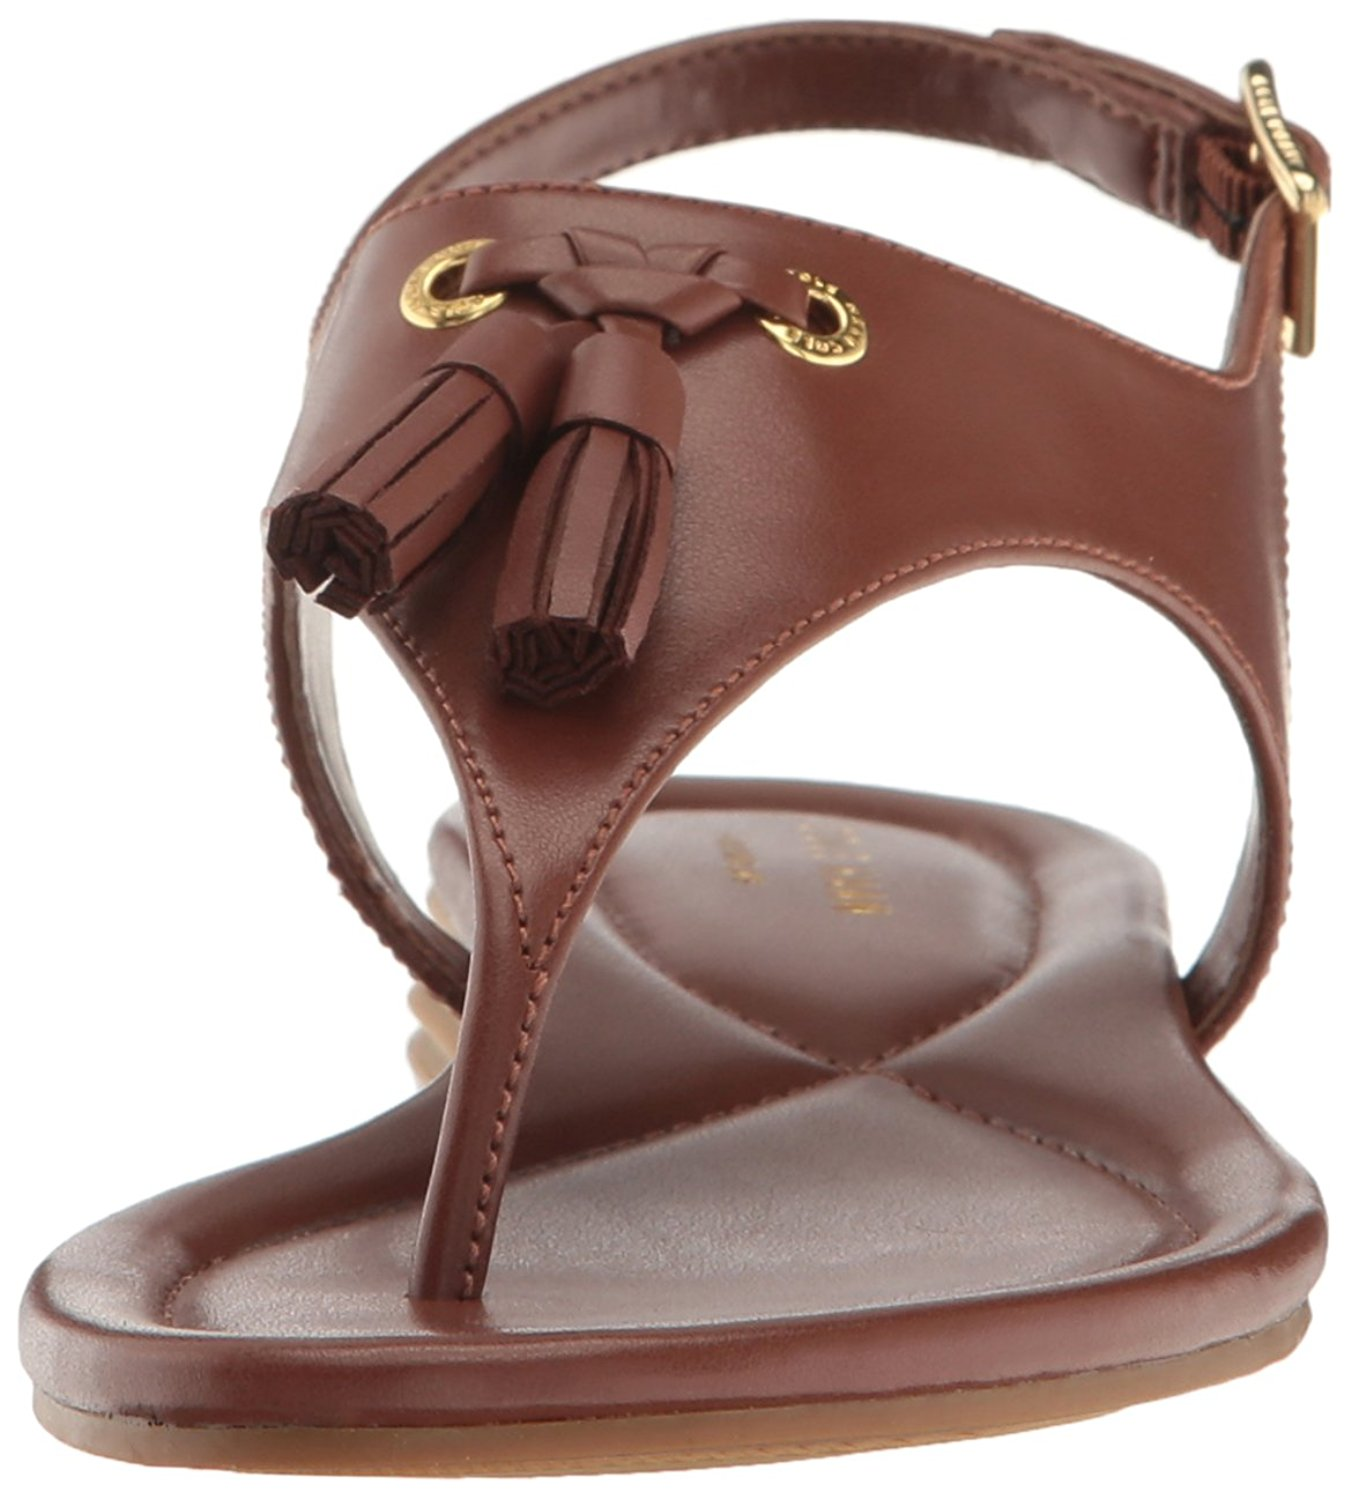 889322ba904b Cole Haan Womens Rona Grand Sandal Open Toe Casual Slingback ...